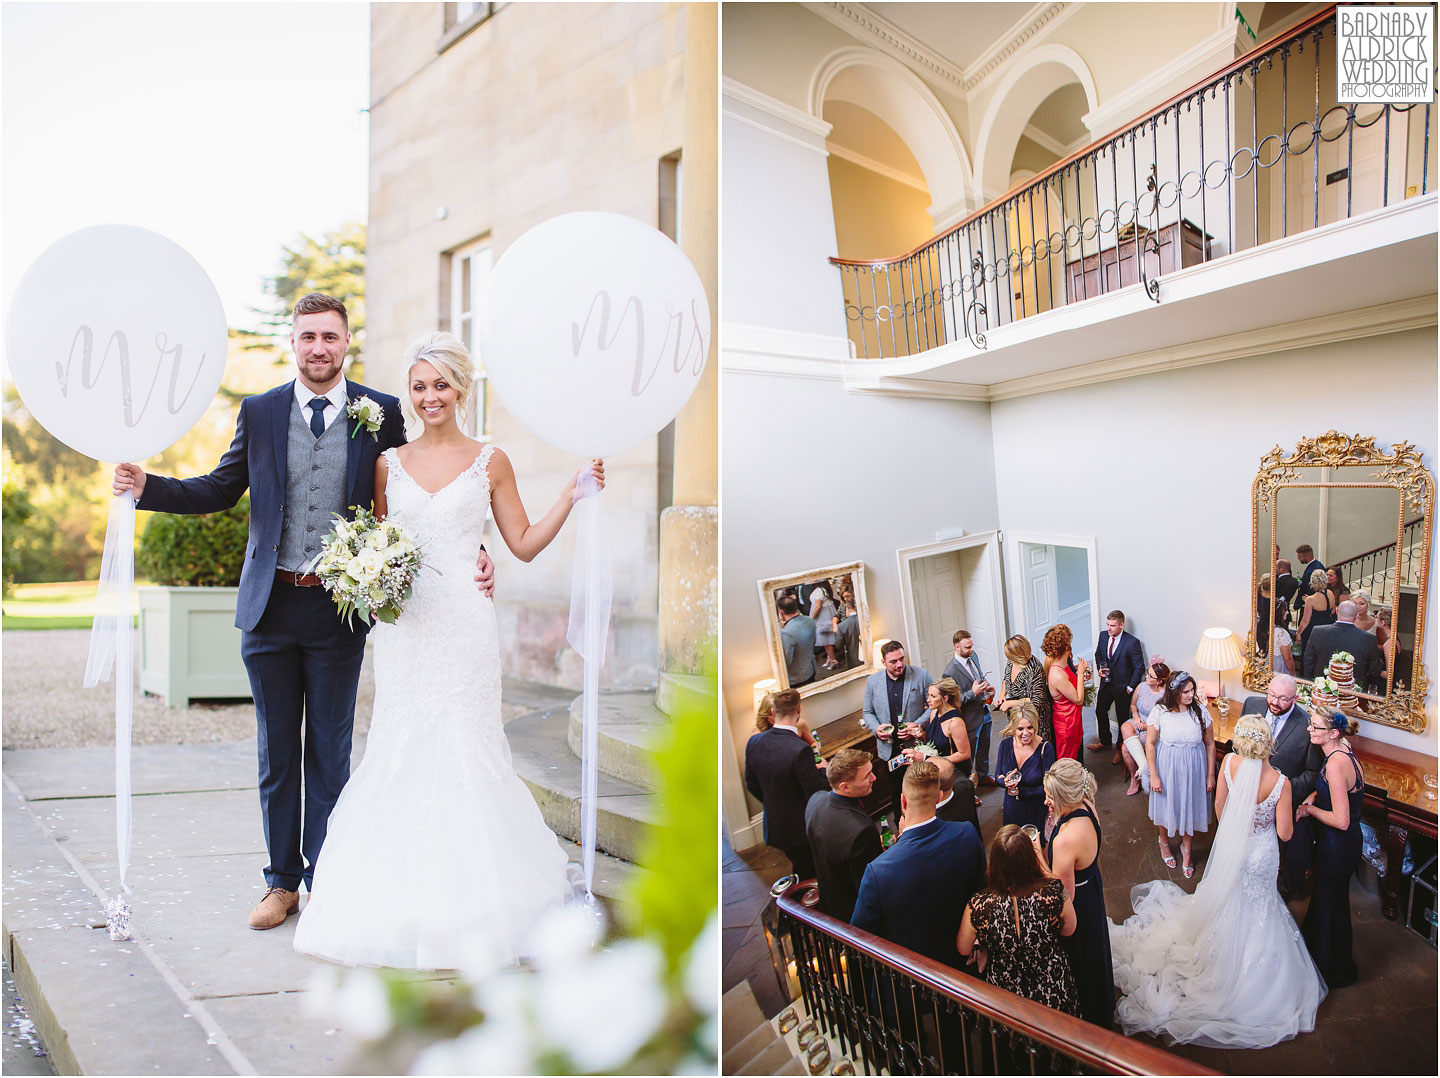 The wedding reception at Saltmarshe Hall near Goole in East Yorkshire, Wedding photography at Saltmarshe Hall, East Yorkshire Wedding Photographer Barnaby Aldrick